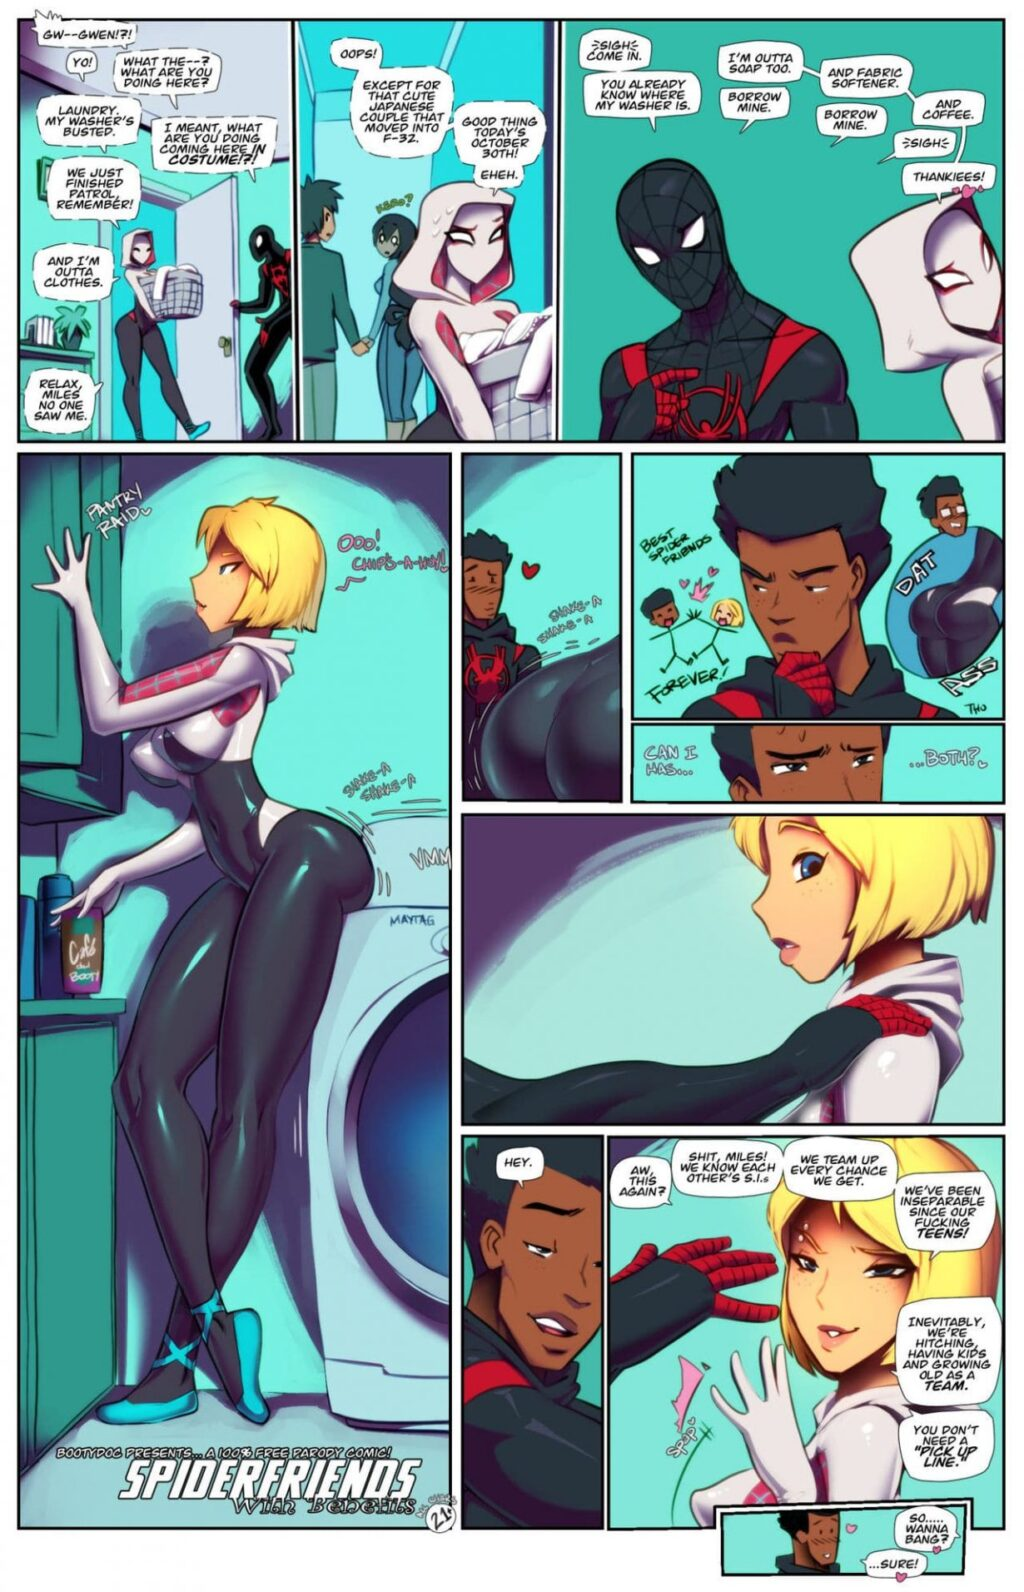 Spidergwen-hentai-manga-cartoon-porn-comics-yoga-pants-latex-bodysuit-costume-super-hero-marvel-Spider-Gwen-stacy-spider-man-Miles-Morales-melanated-full-color-interracial-spider-verse-Spiderfriends-with-benefits